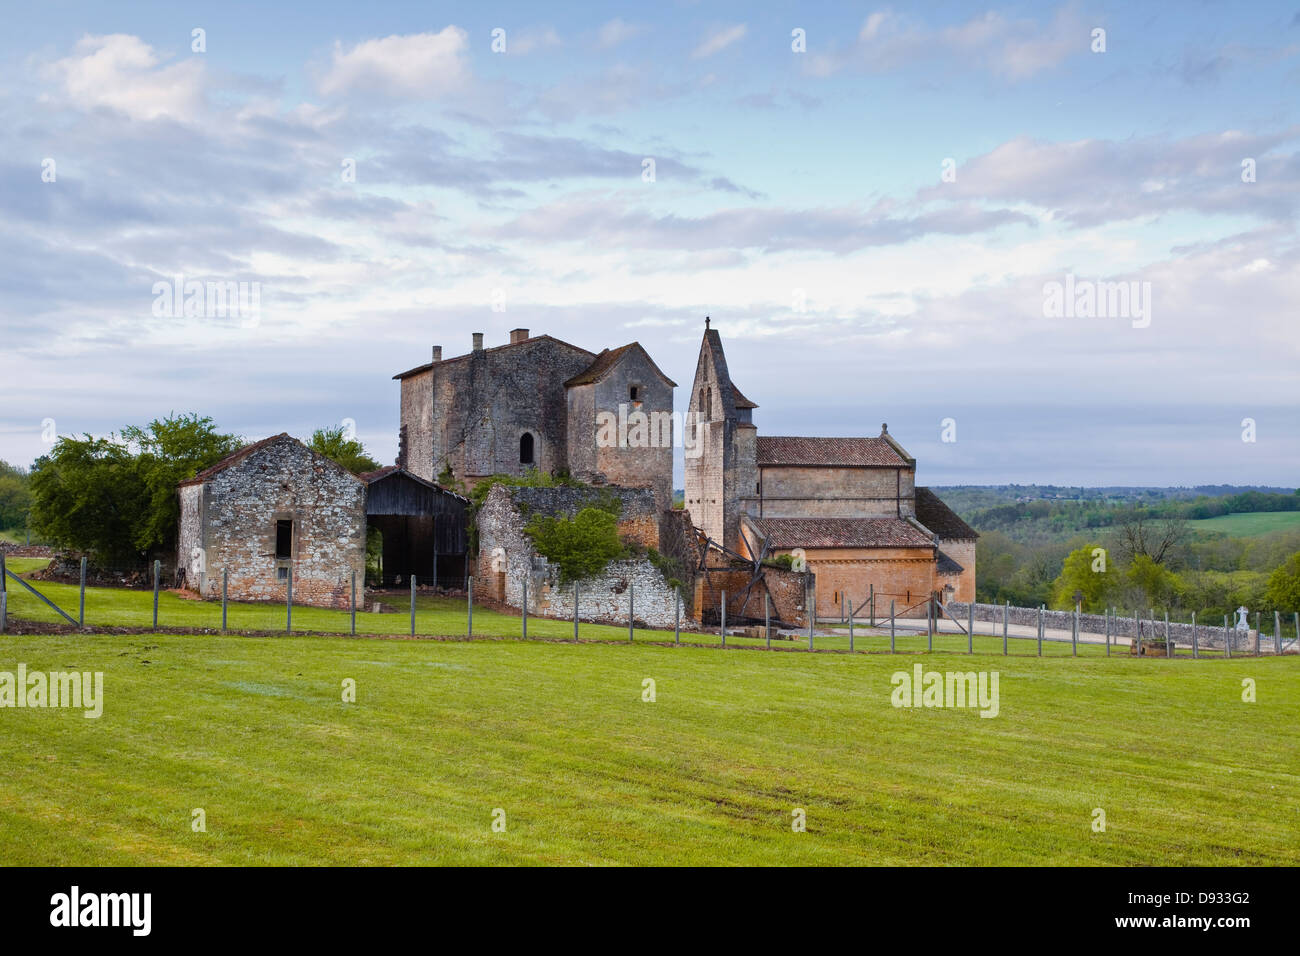 The church and old priory in Sainte Croix de Beaumont in the Dordogne area of France. Stock Photo